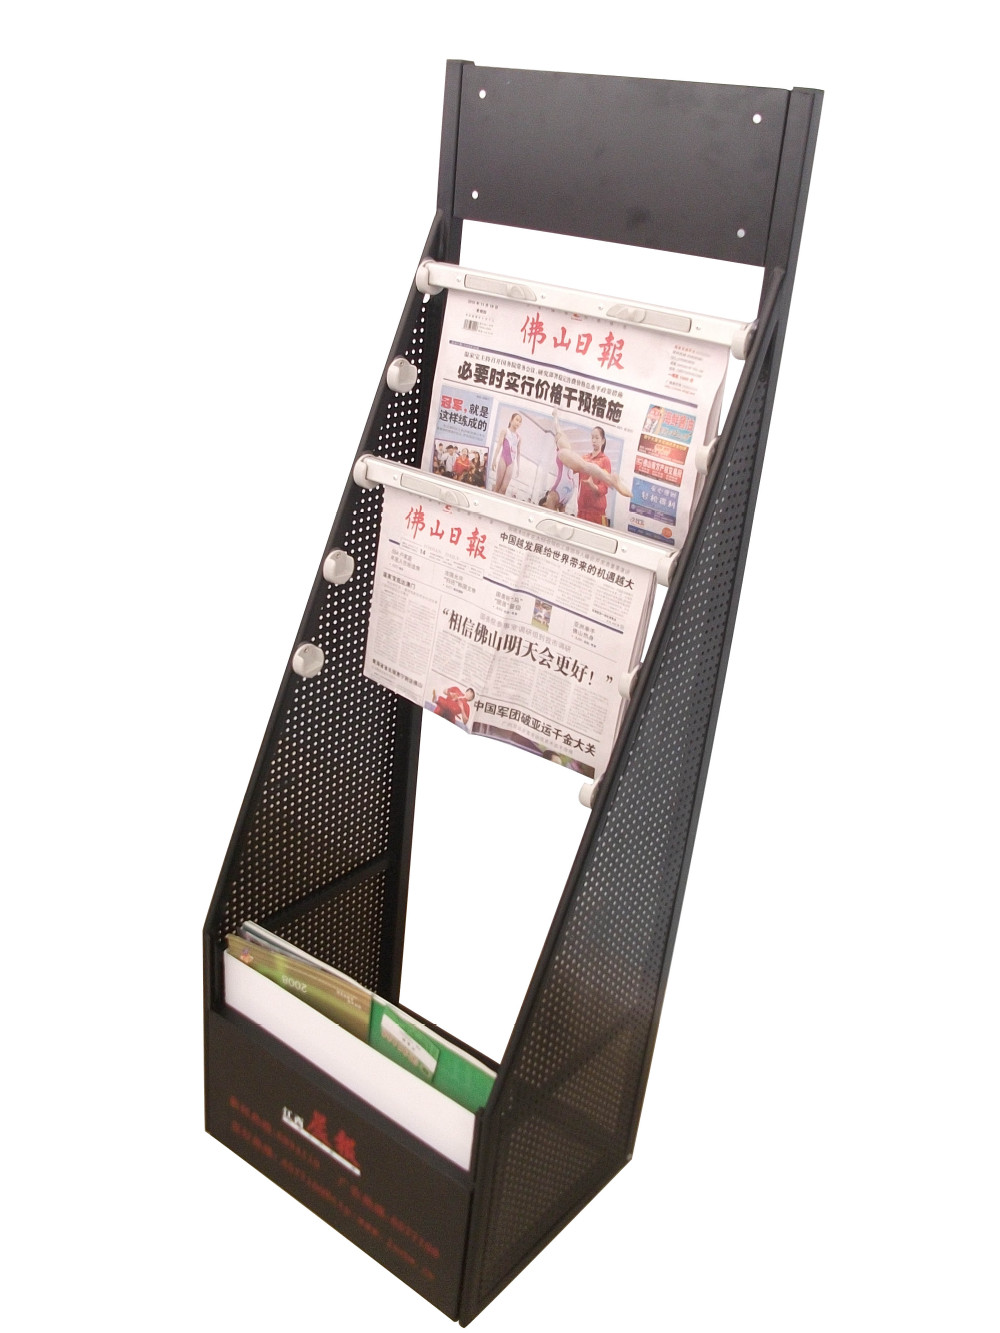 the library display standblack outdoor newspaper racks hyx  - the library display stand  black outdoor newspaper racks hyx